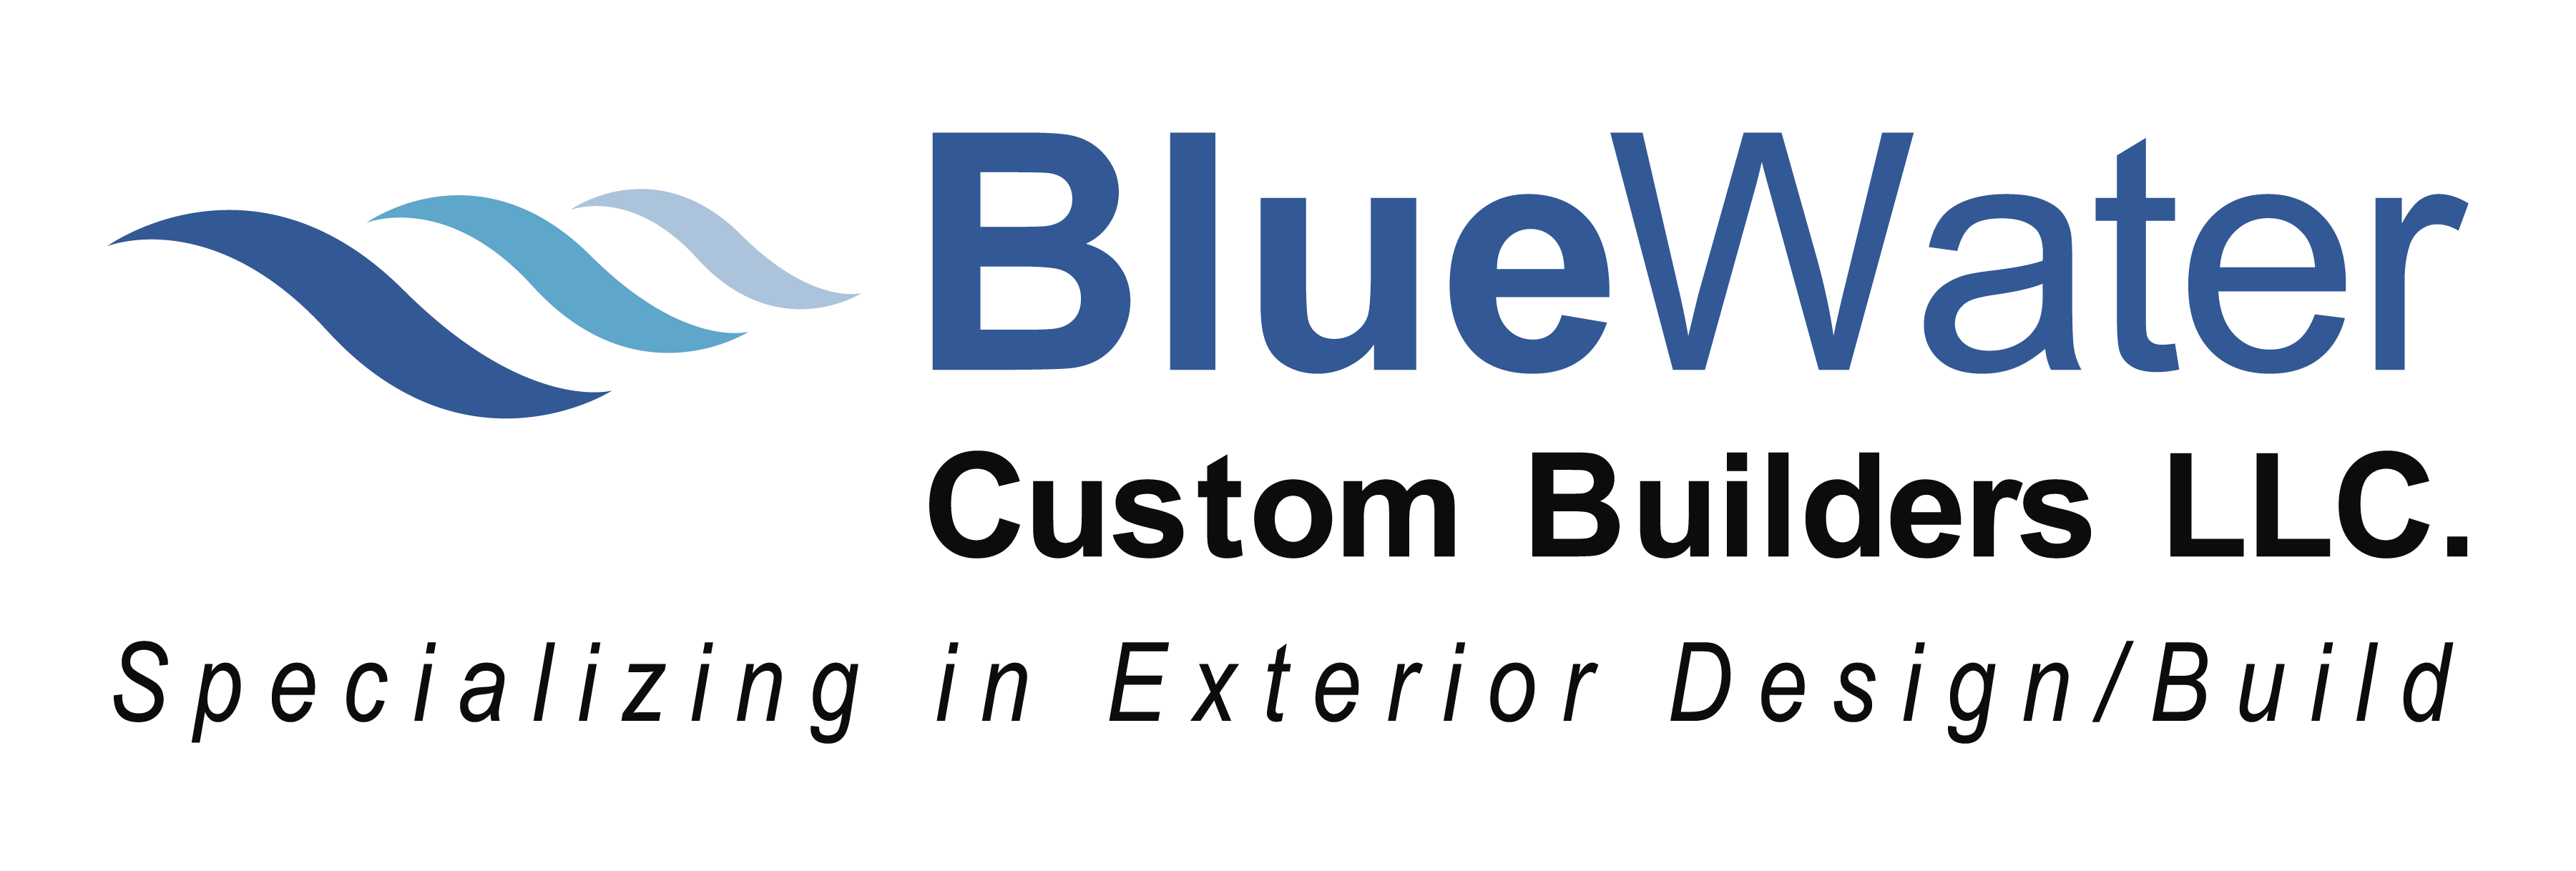 Bluewater Custom Builders Logo